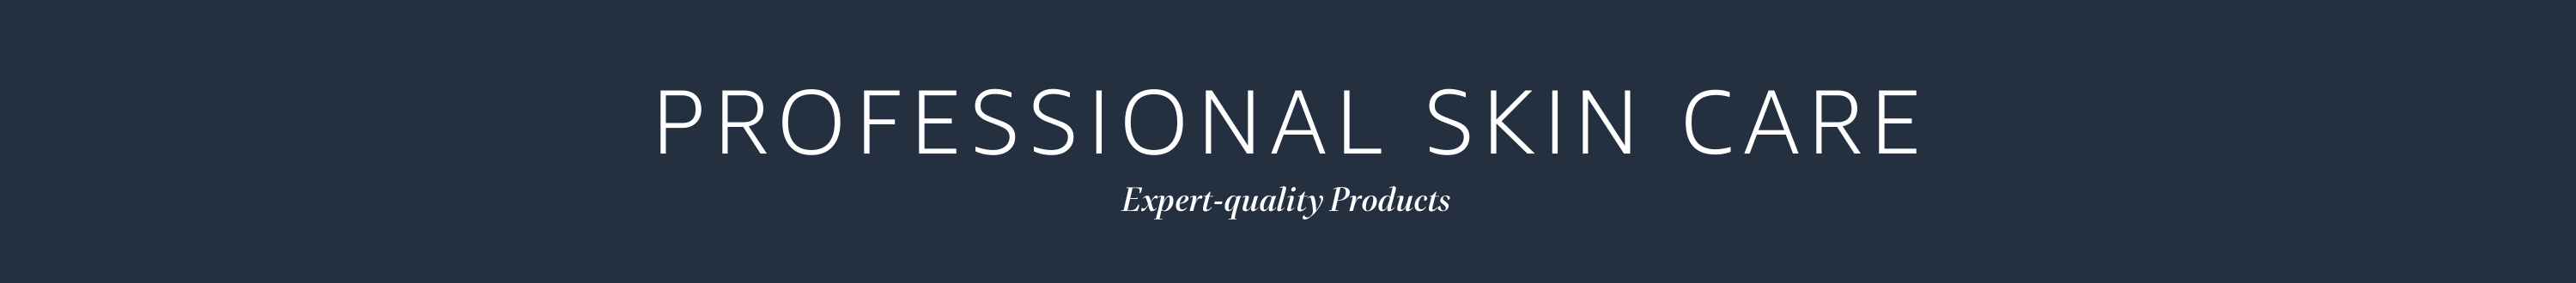 Expert-Quality skin care products sold by Amazon